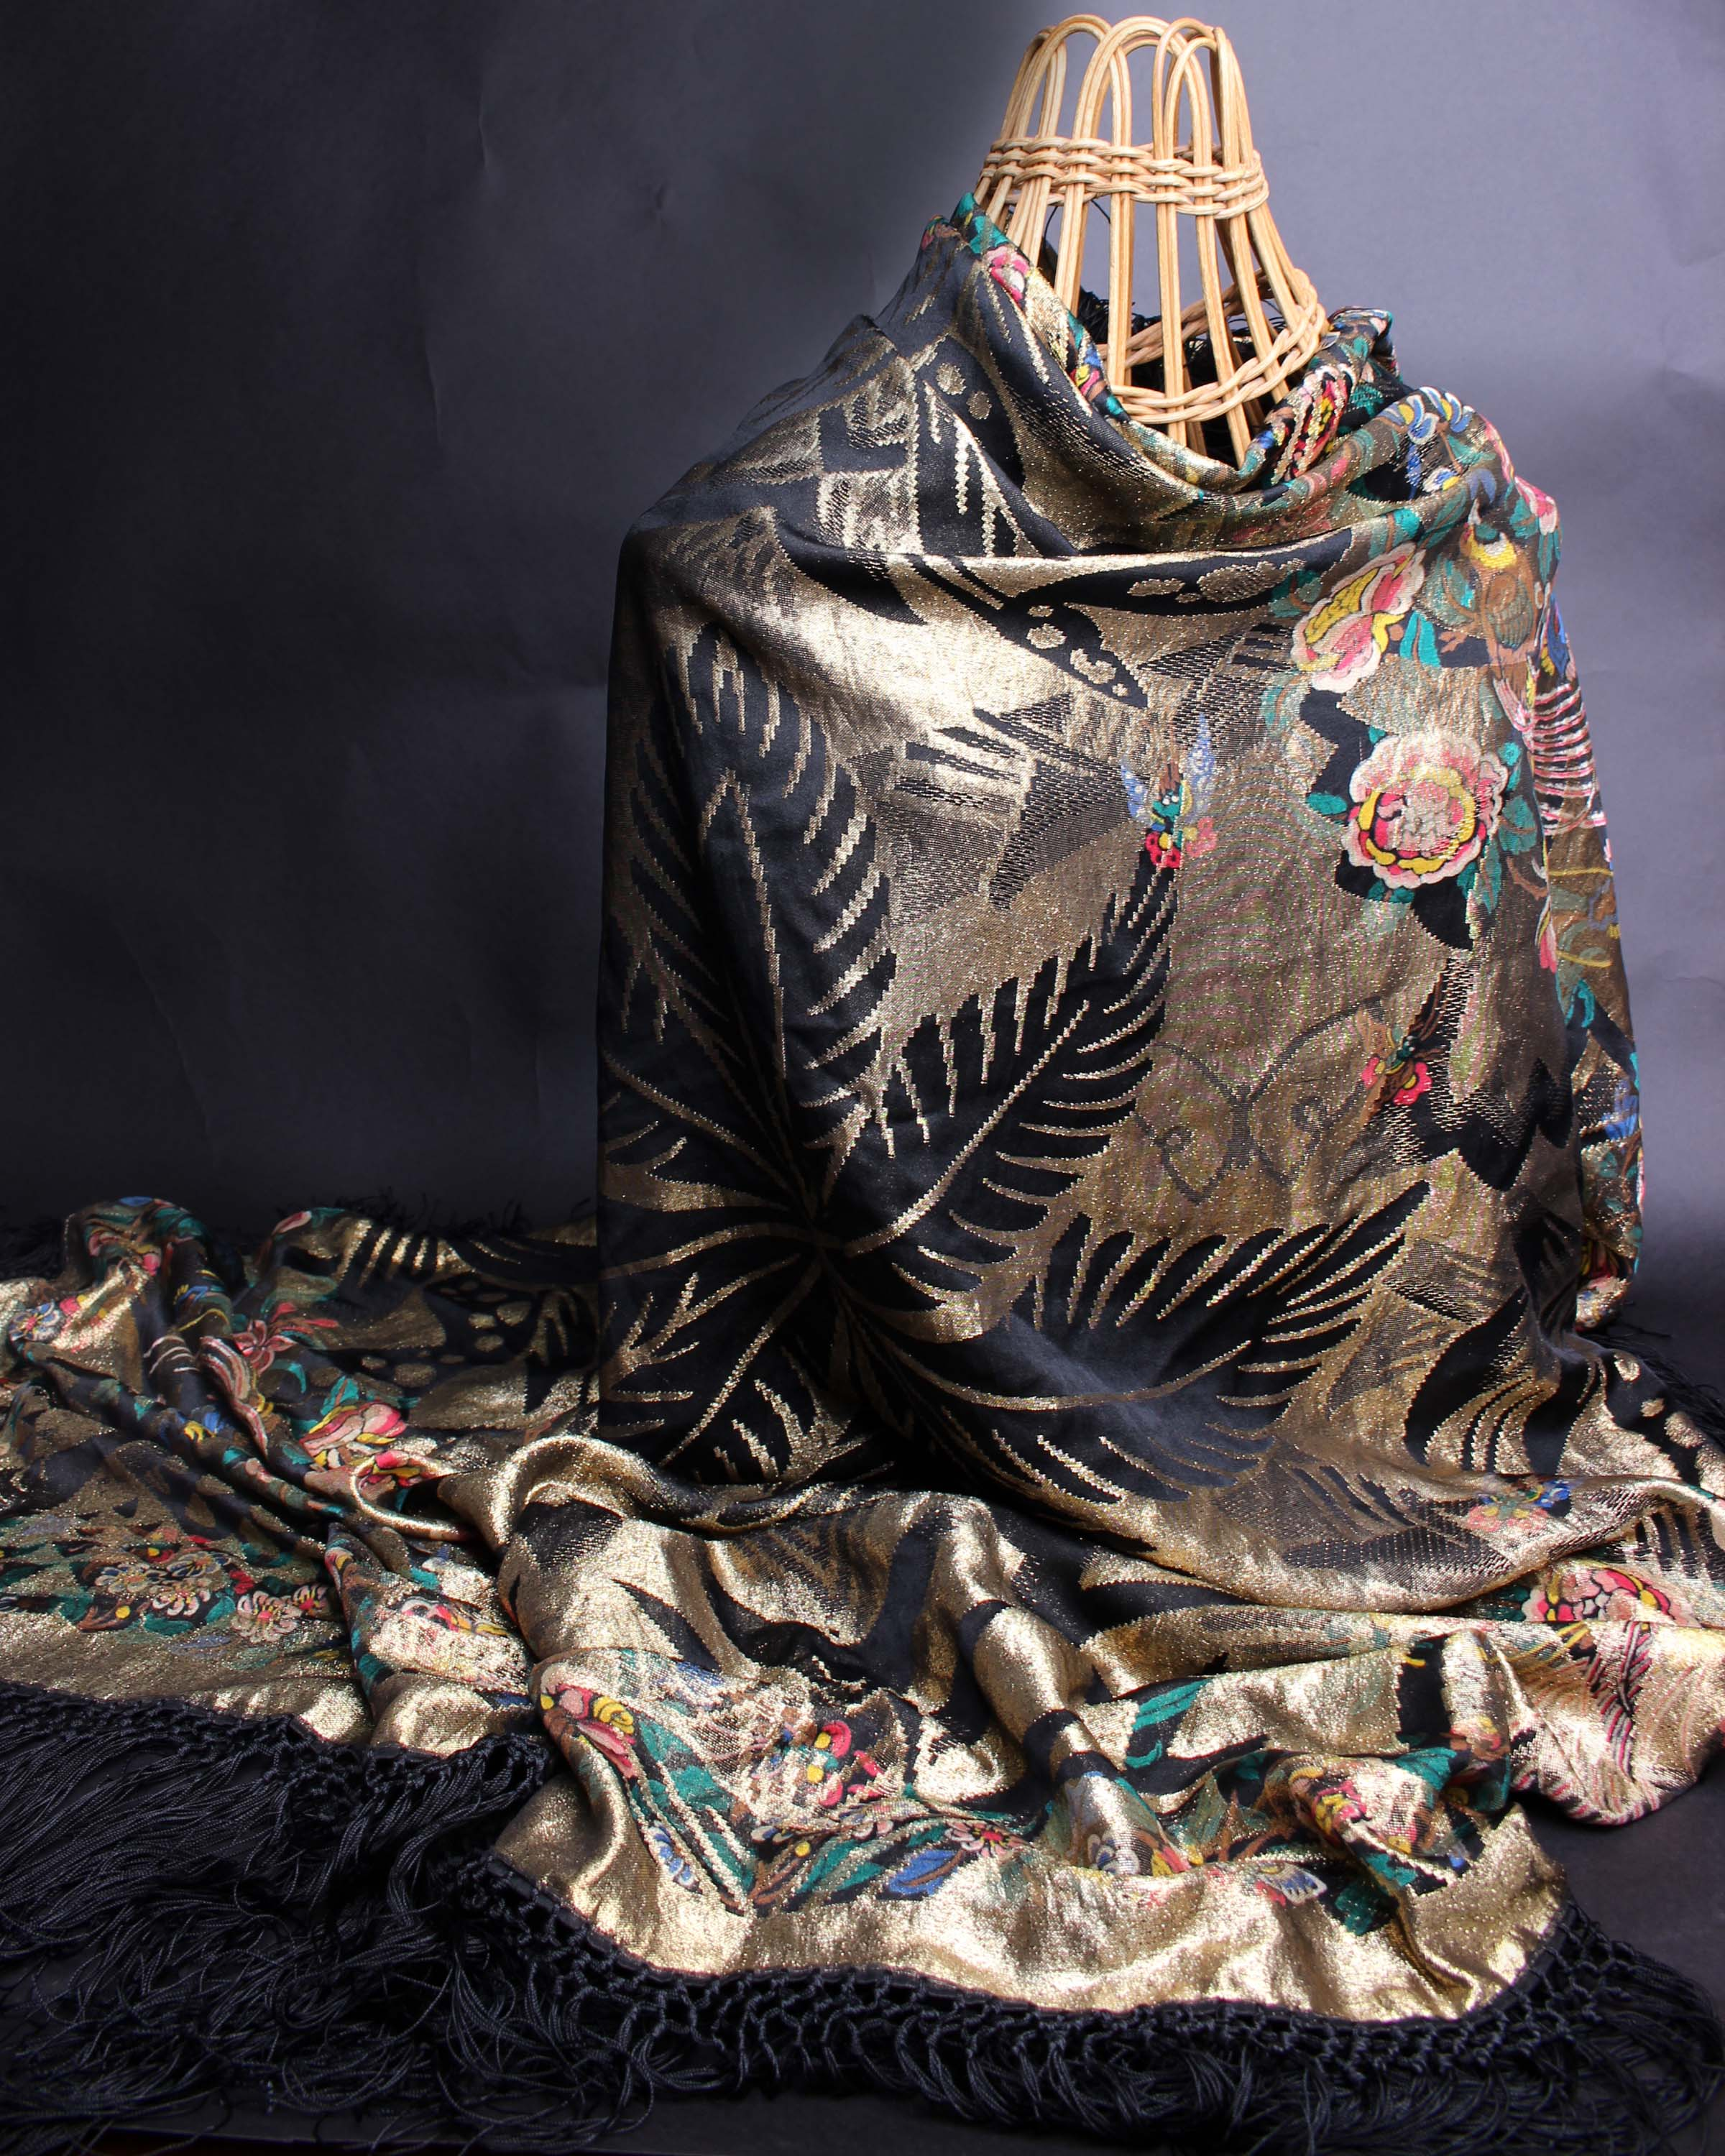 Lot 43 - An early 20th Century fringed black and gold lamé shawl, with a striking design of large palm